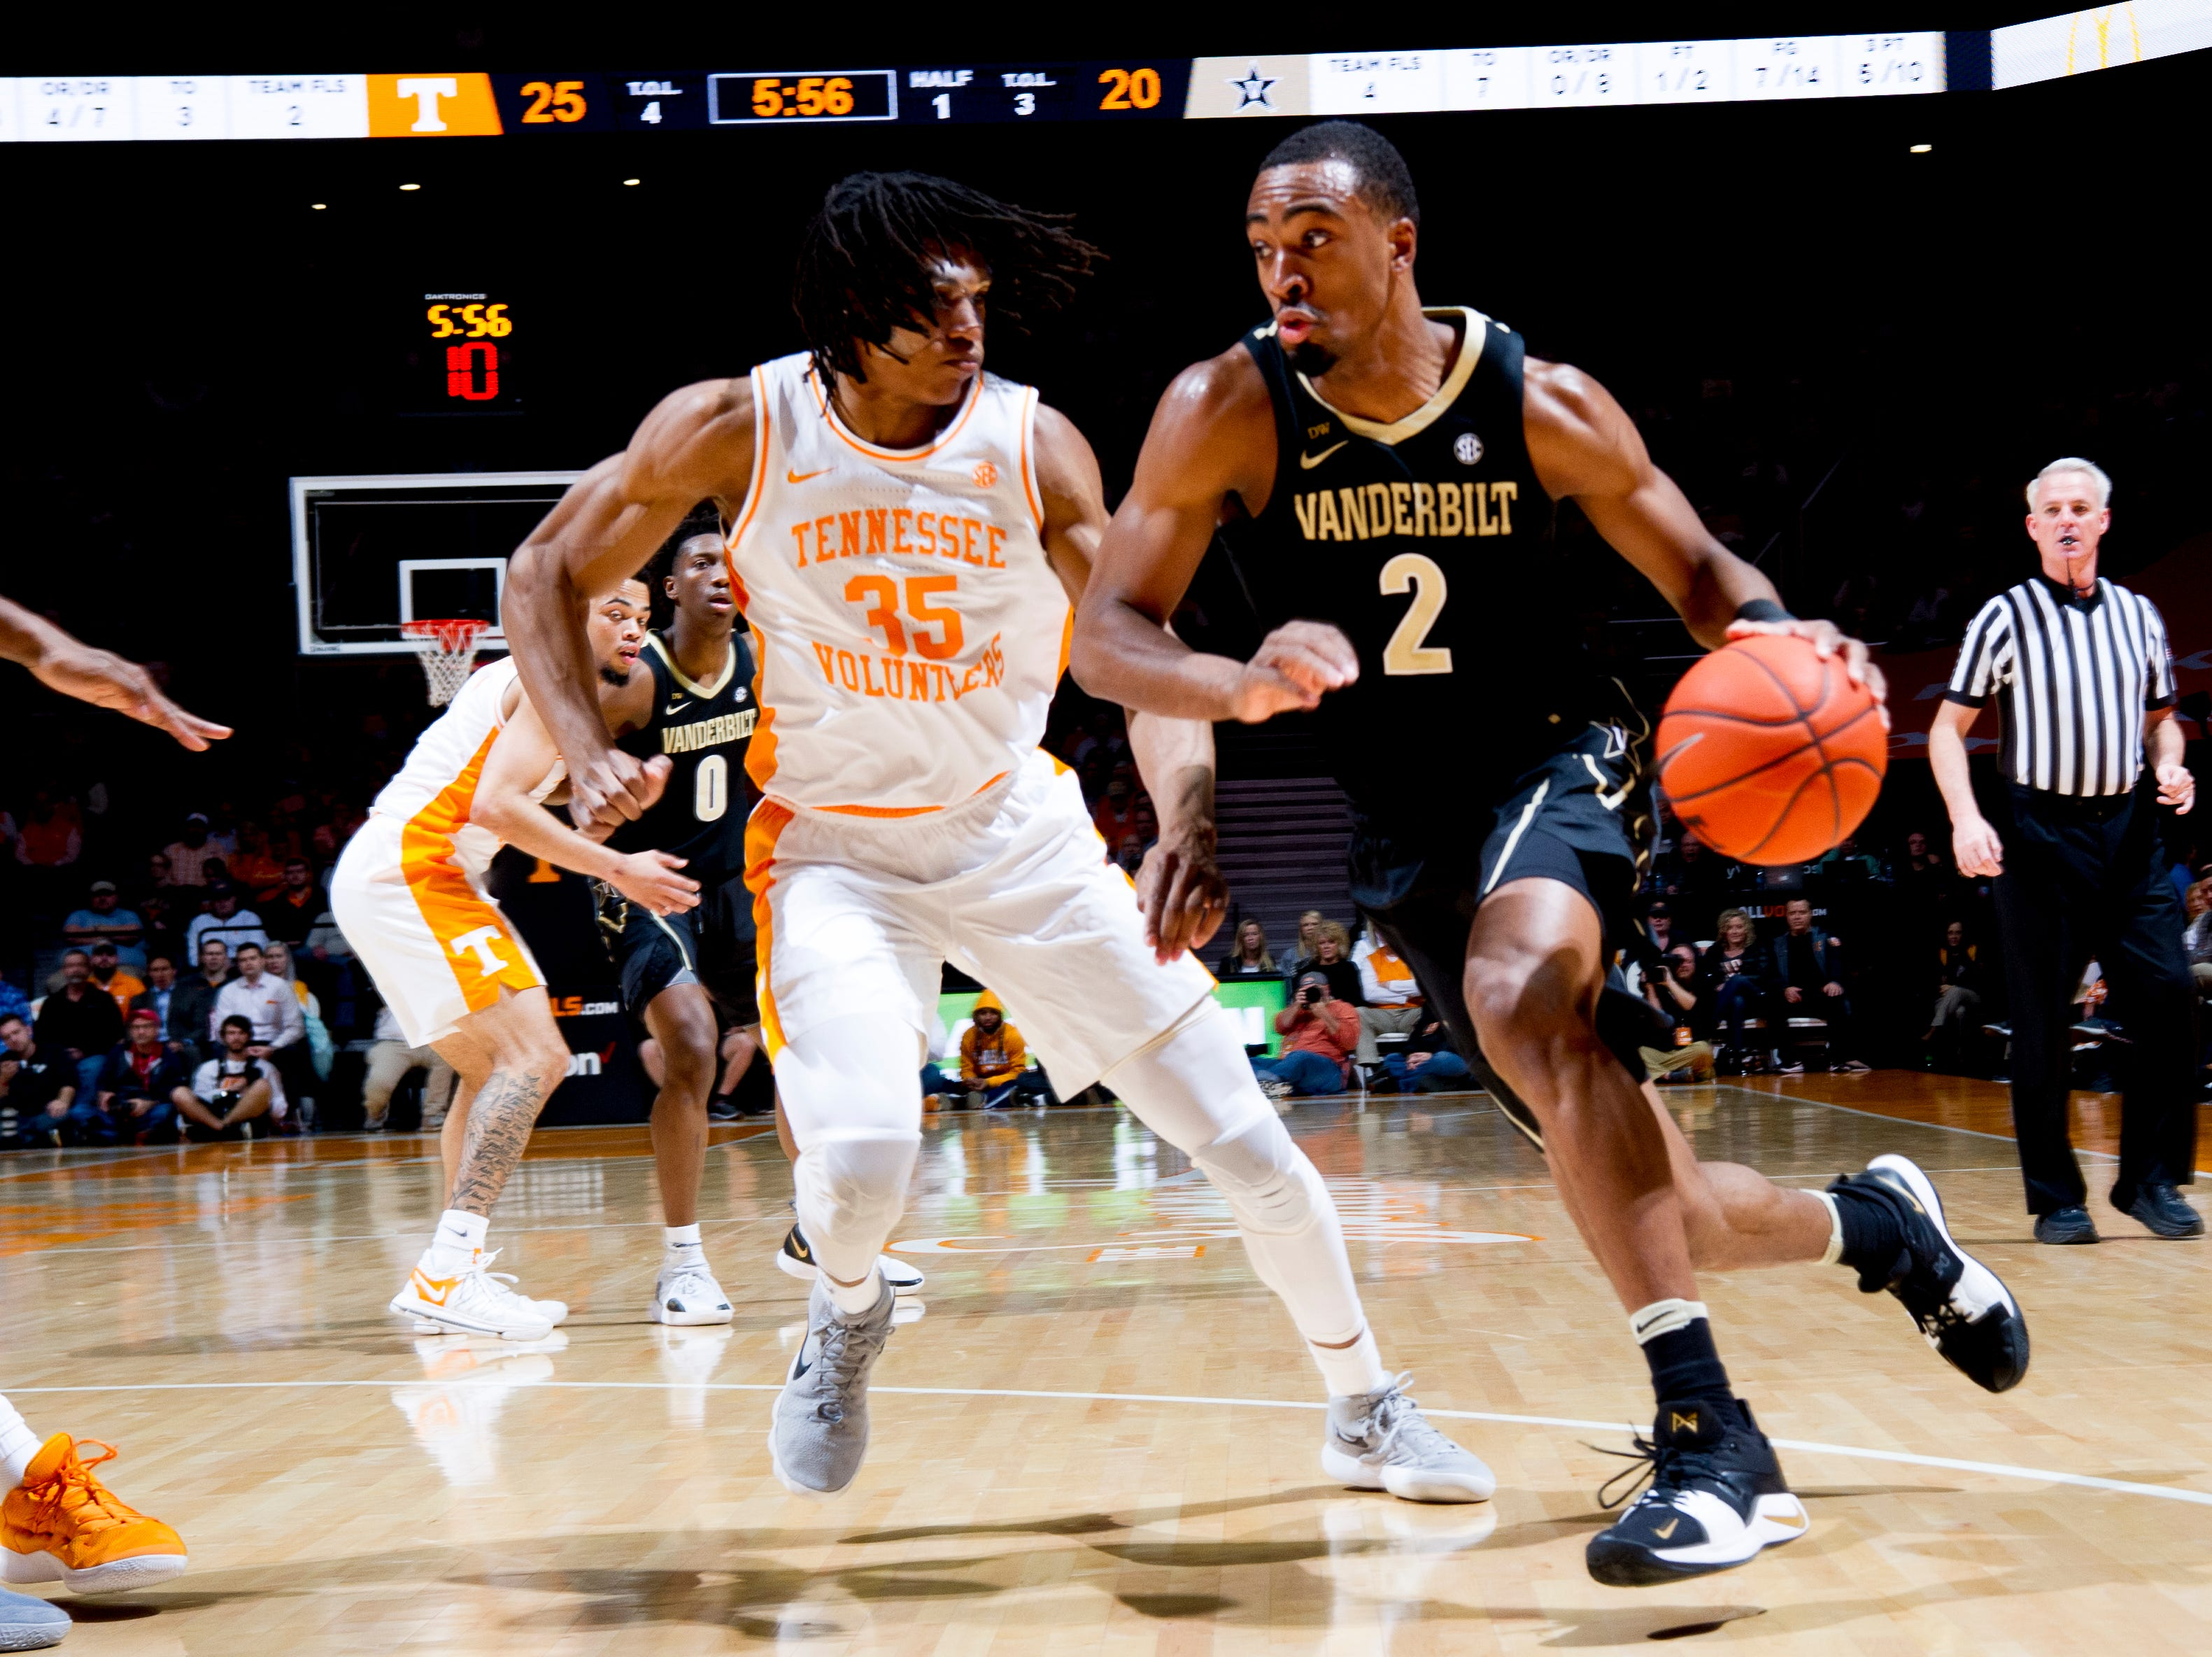 Vanderbilt guard/forward Joe Toye (2) dribbles the ball around Tennessee guard/forward Yves Pons (35) during a game between Tennessee and Vanderbilt at Thompson-Boling Arena in Knoxville, Tennessee on Tuesday, February 19, 2019.